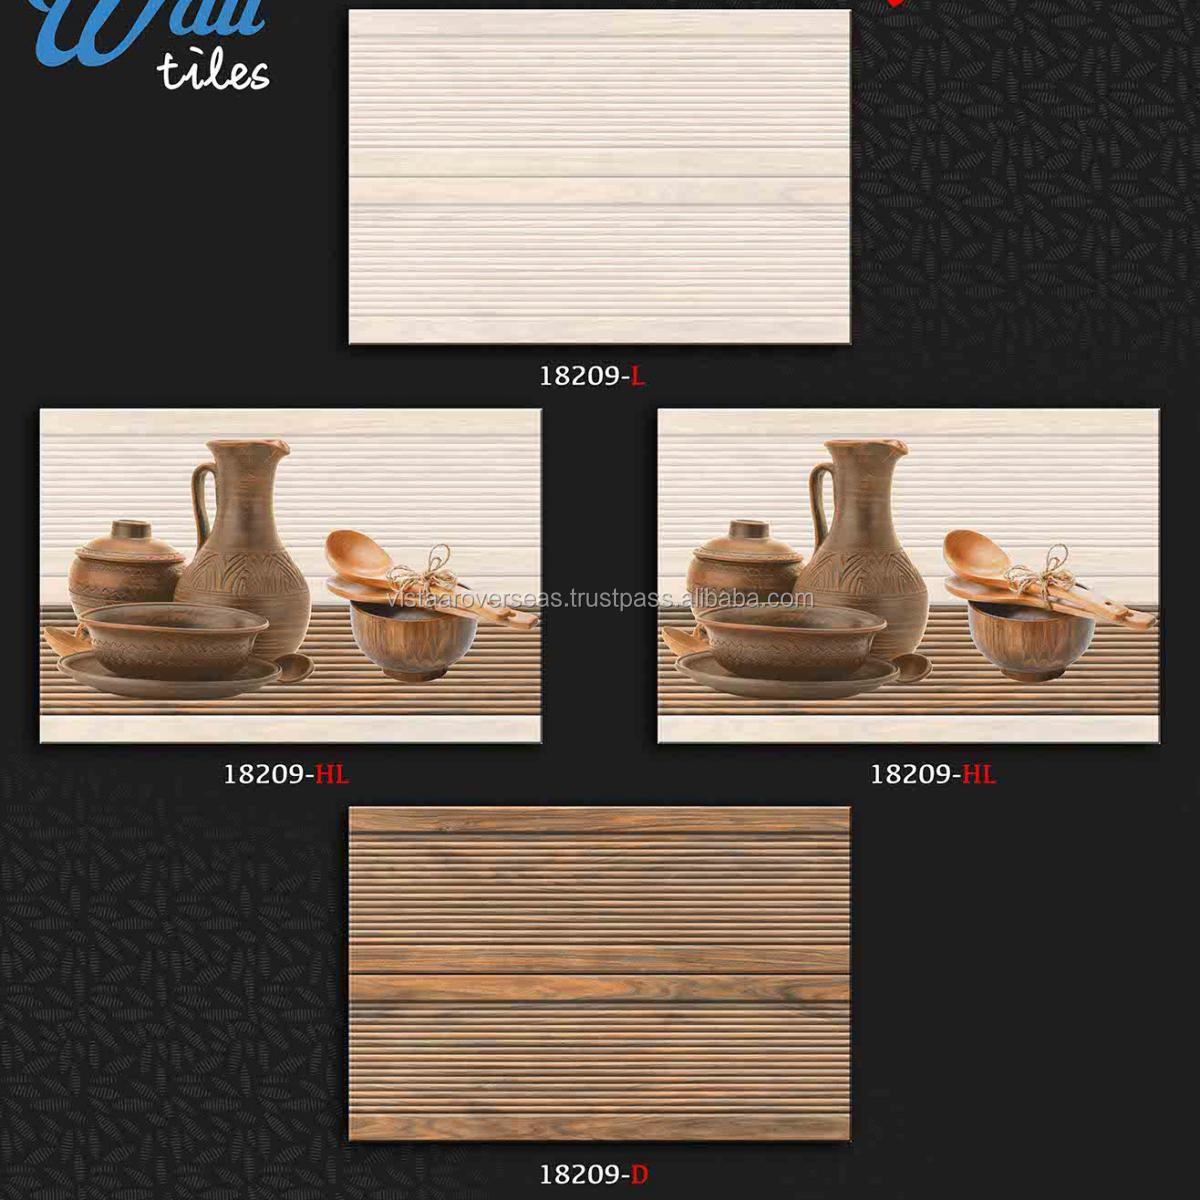 Living Room Background Mug Pattern 3d Ceramic Wall Tile Designs 3d Wall Decor Tile For Bedroom Buy Latest Design Wall Tiles Decorative Wall Foam Tile Dining Room Wall Ceramic Tile Product On Alibaba Com